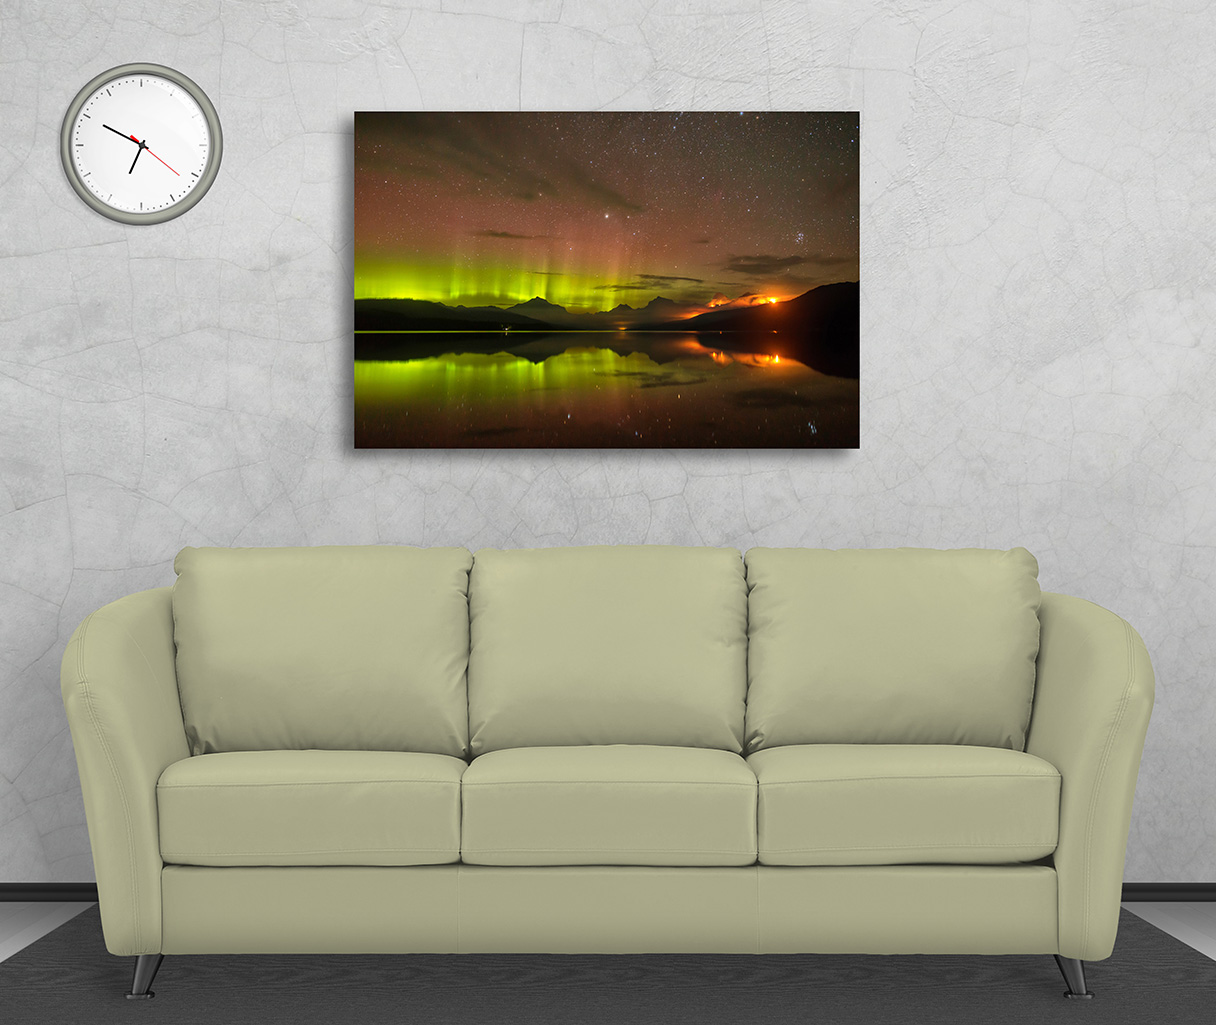 Aurora Borealis and Sprague Wildfire on Metal